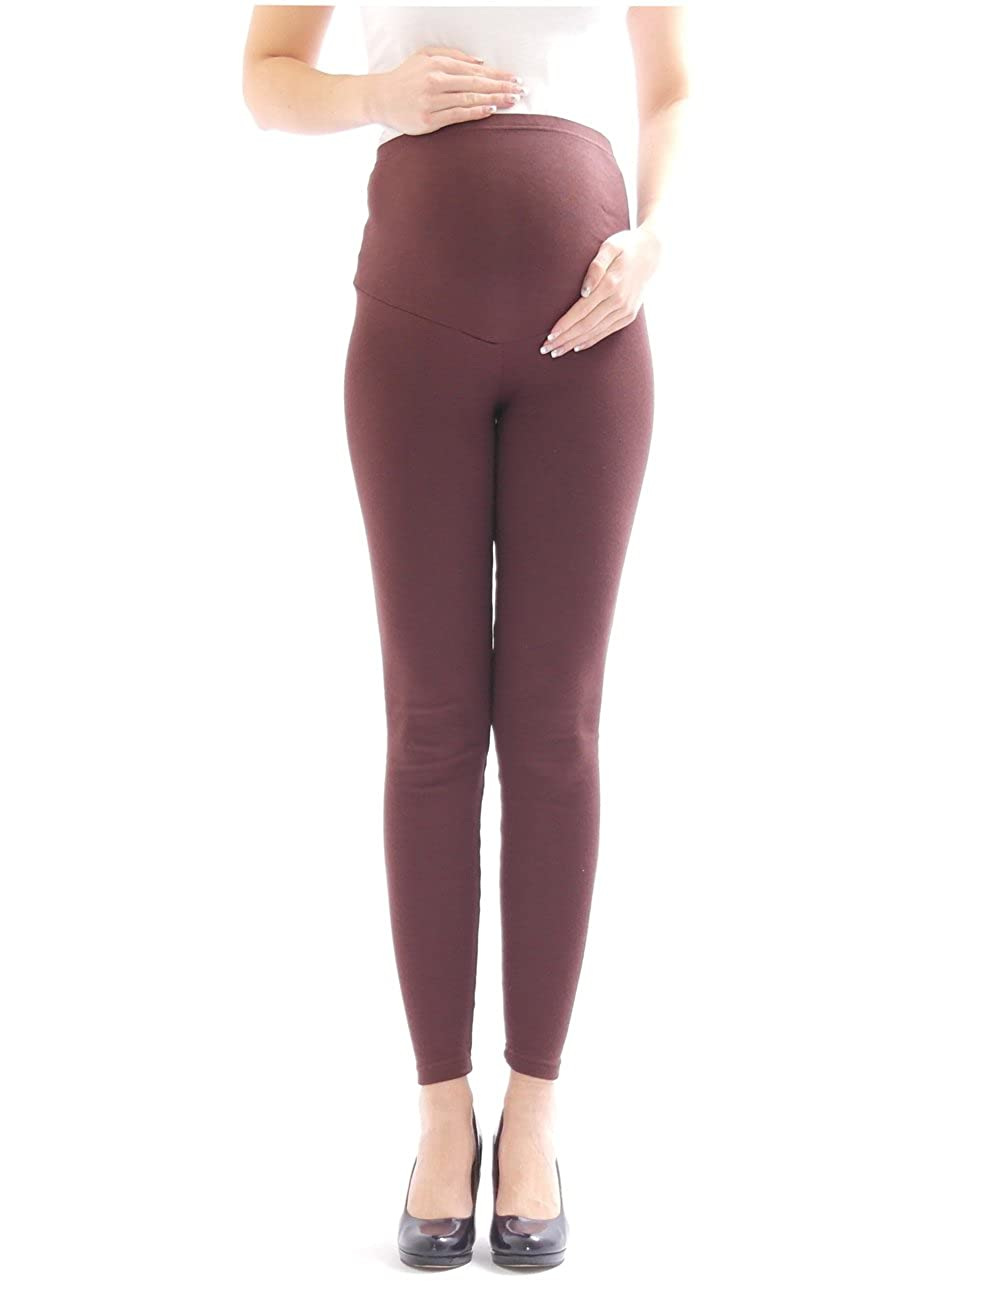 Maternity Jeans Maternity Leggings Full Length Stretch Leggings Women's Cotton